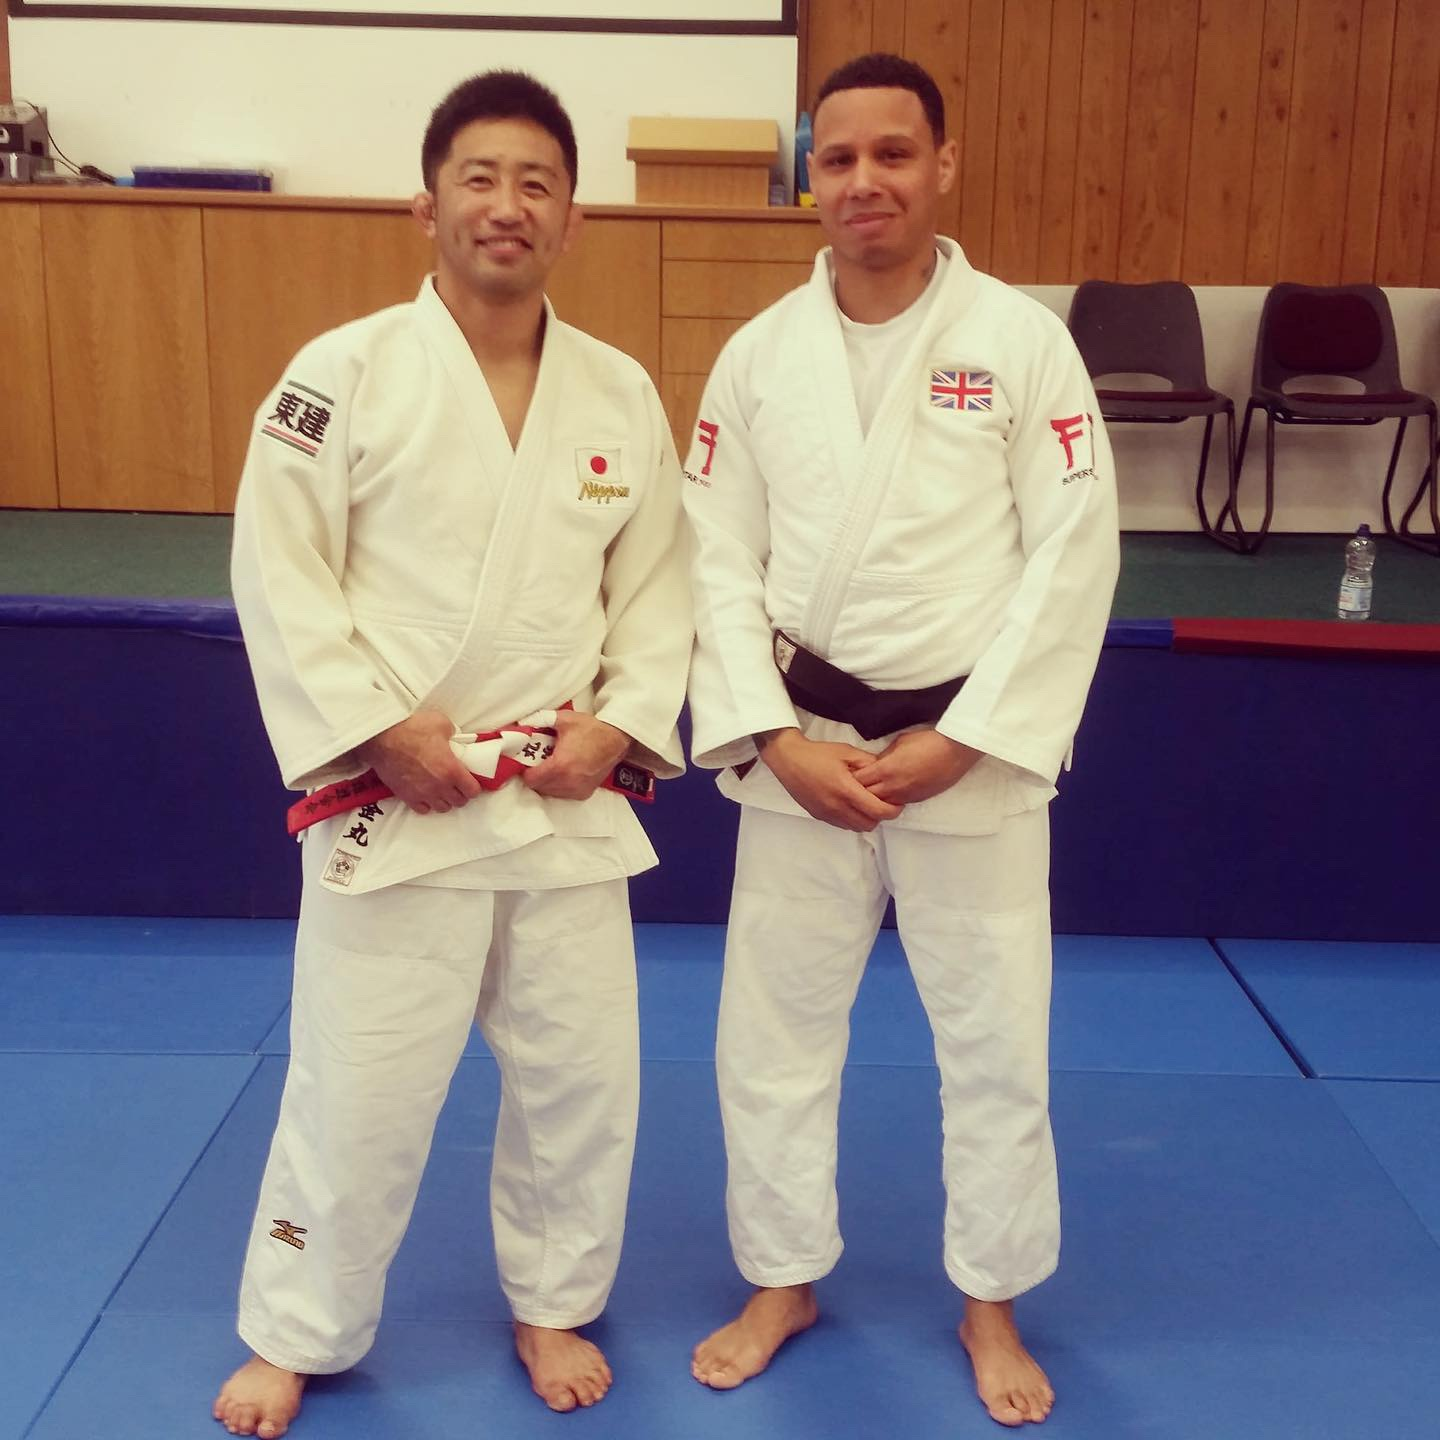 Coach to 2016 Olympic and Double World Champion Shohei Ono, Middleweight Coach for the Japanese,